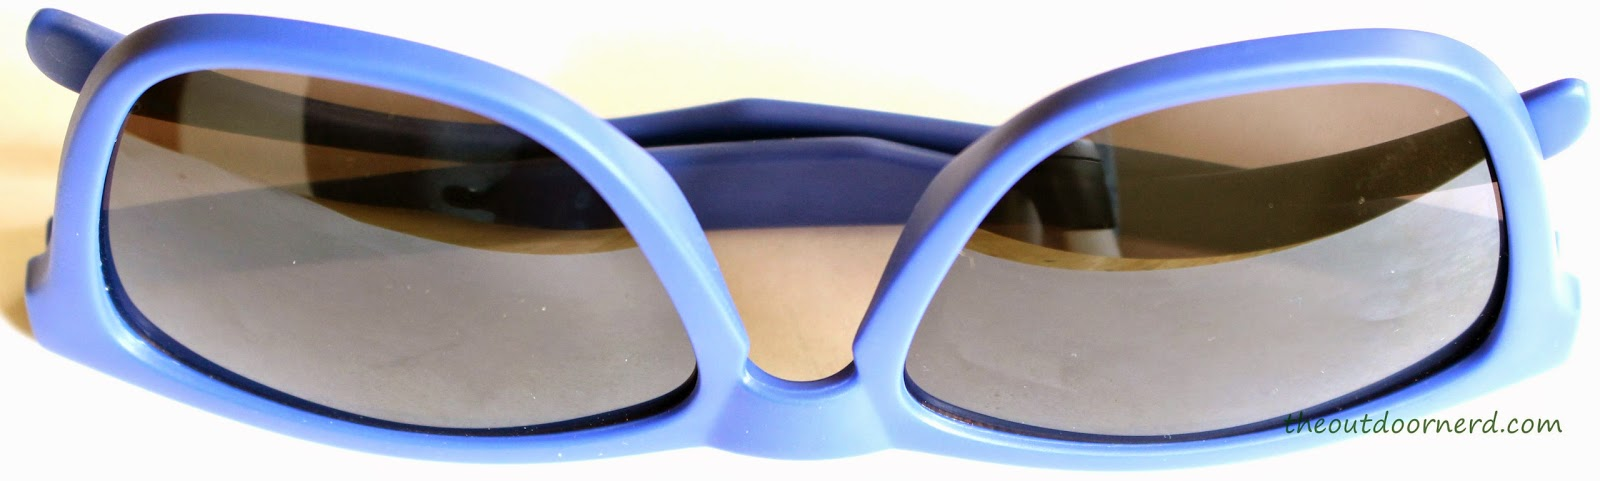 Nectar Cruze Sunglasses: Product View 8